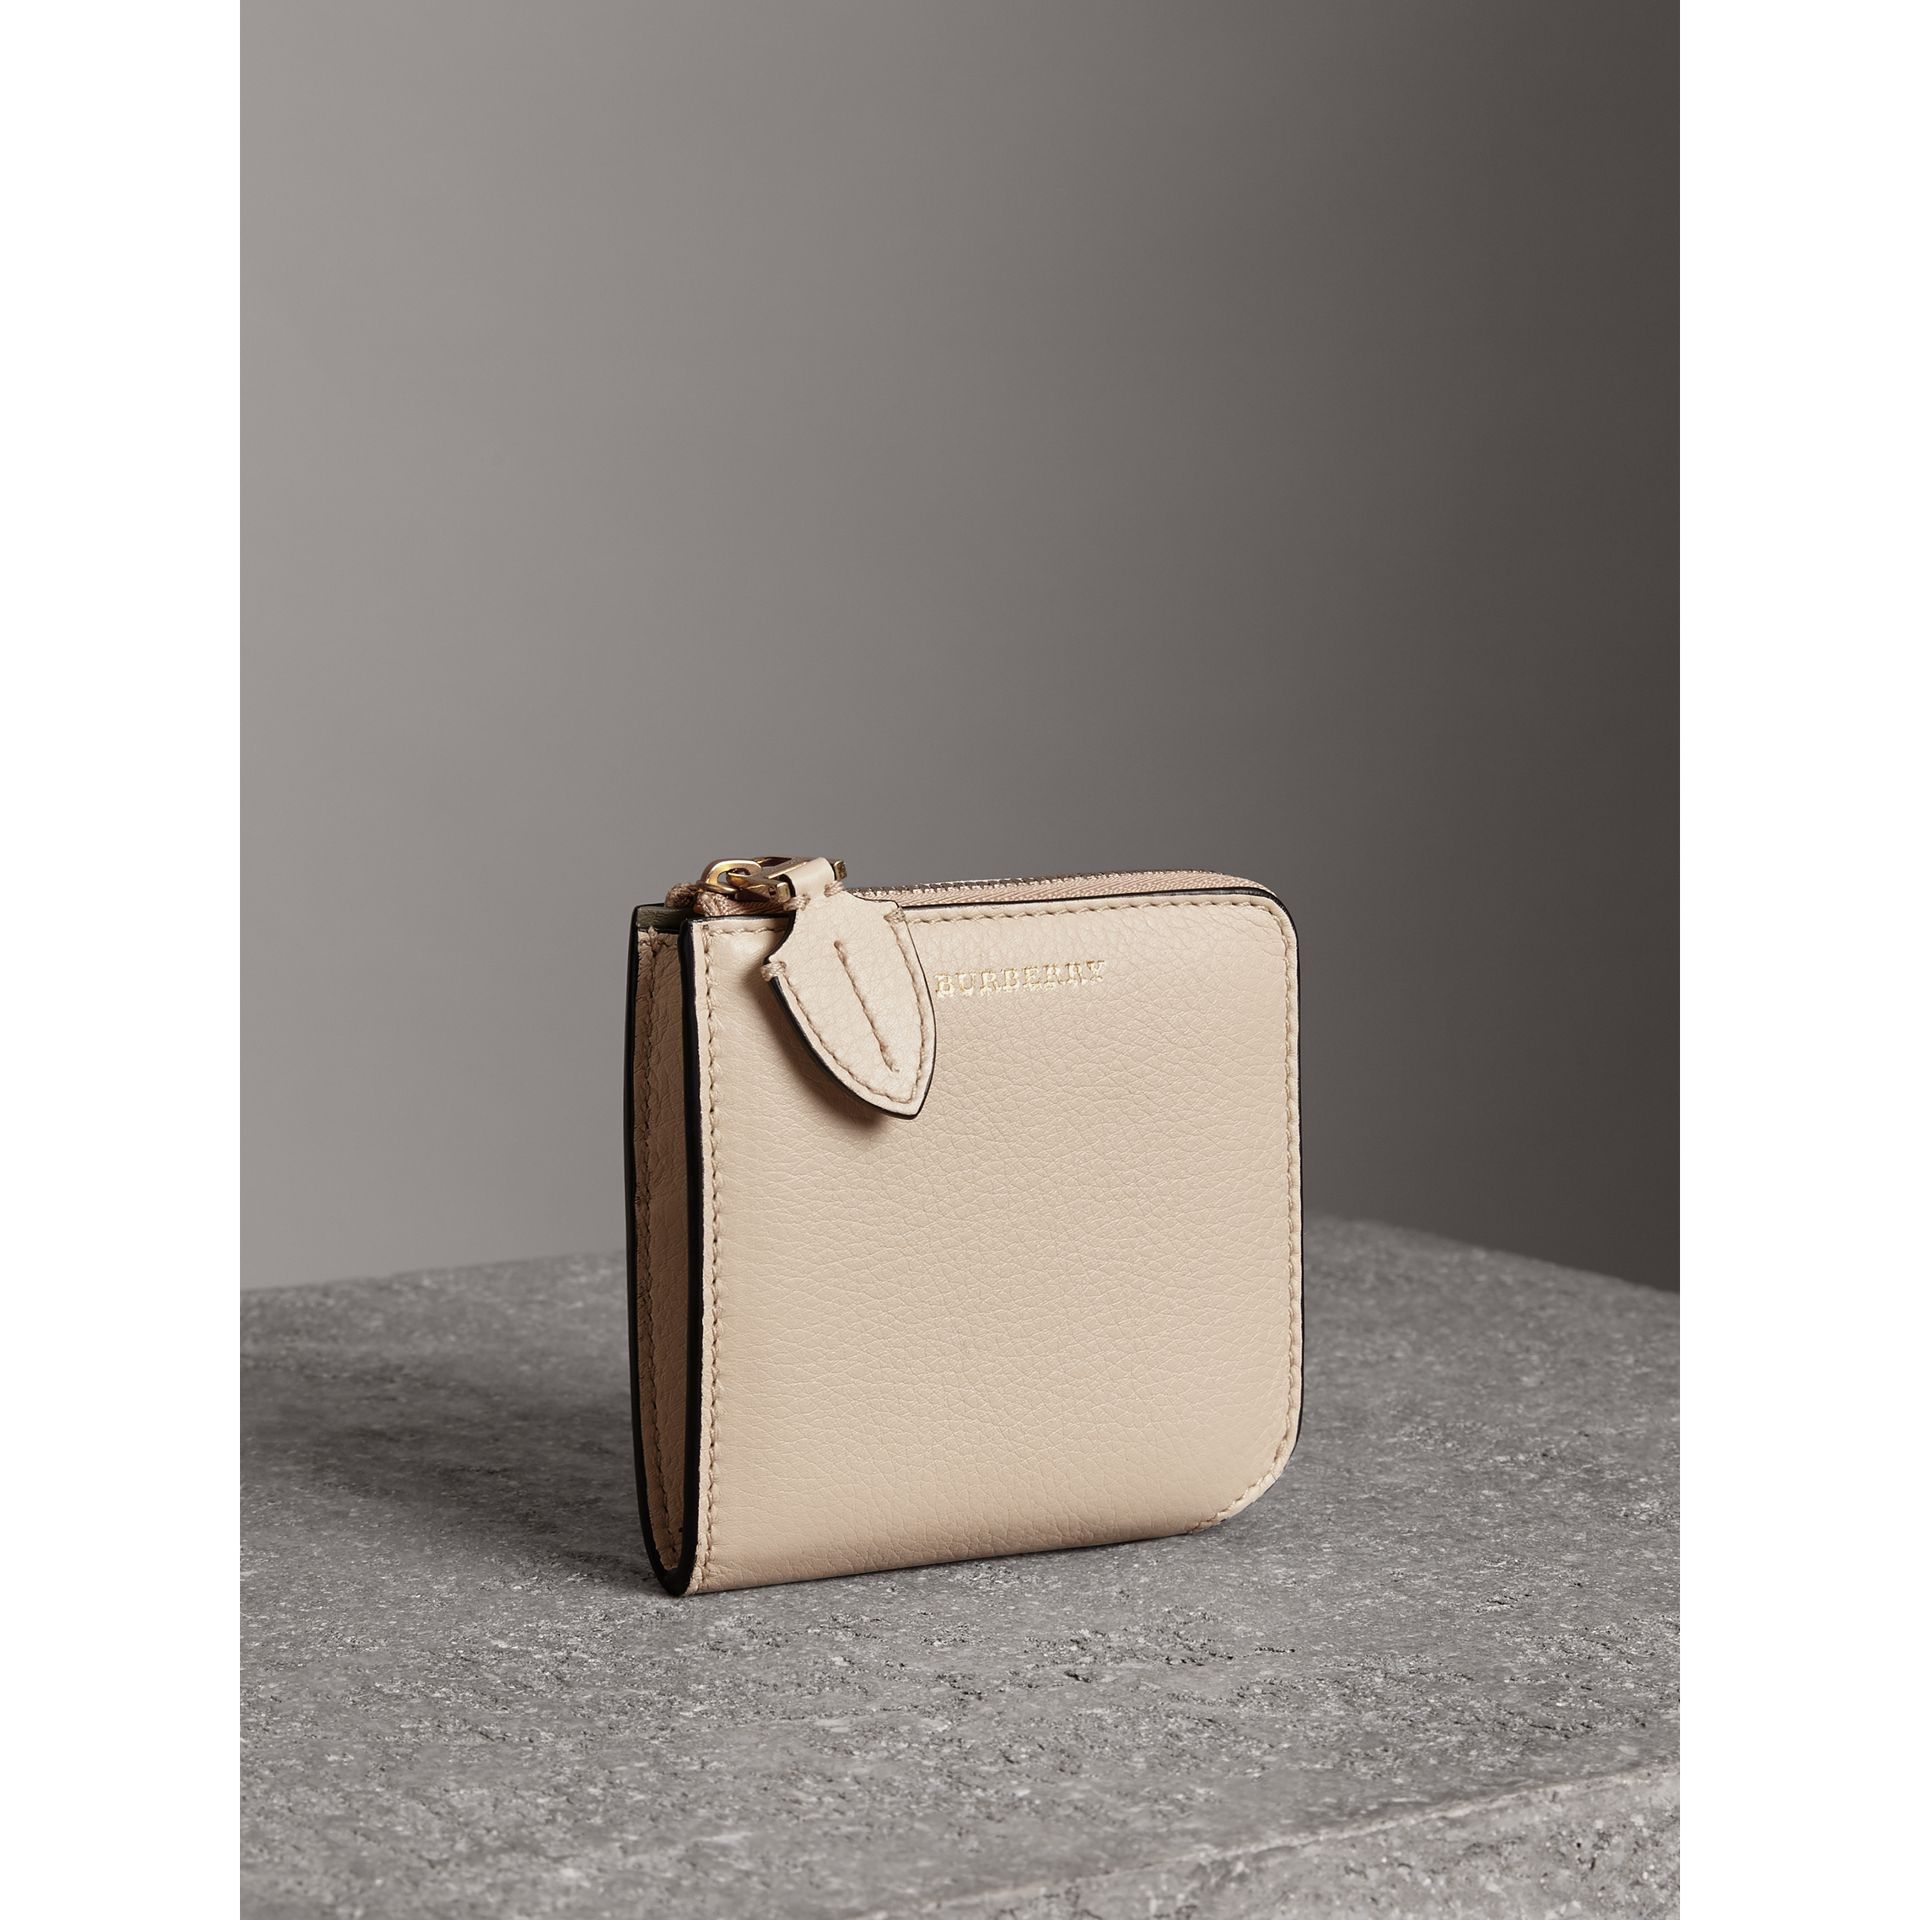 Grainy Leather Square Ziparound Wallet in Limestone - Women | Burberry Canada - gallery image 4